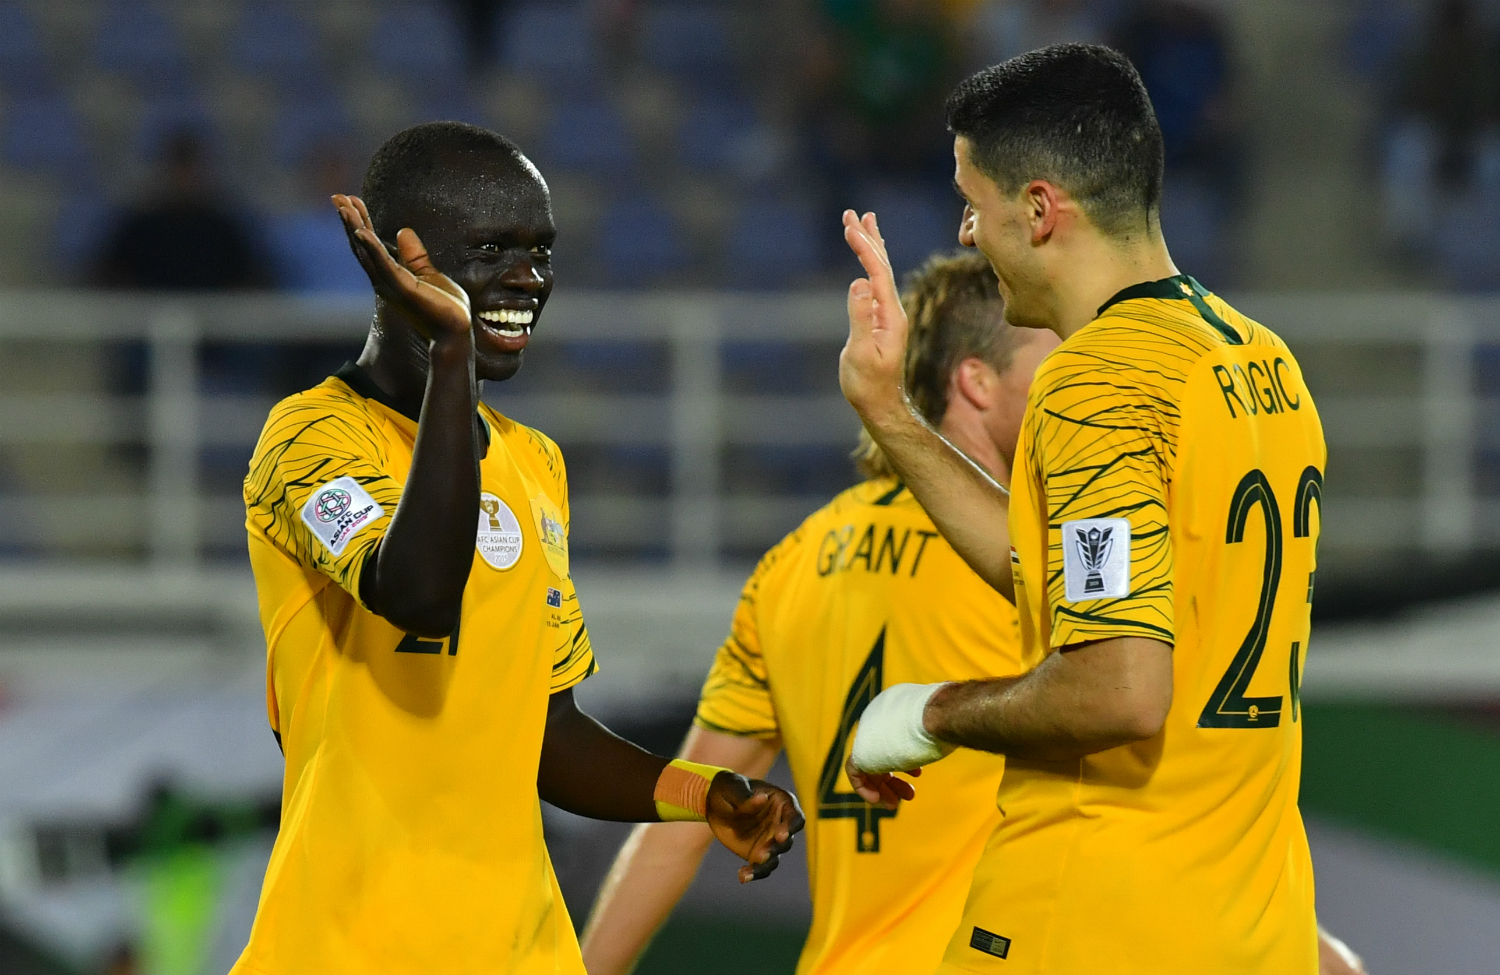 Awer Mabil and Tom Rogic (The AFC)